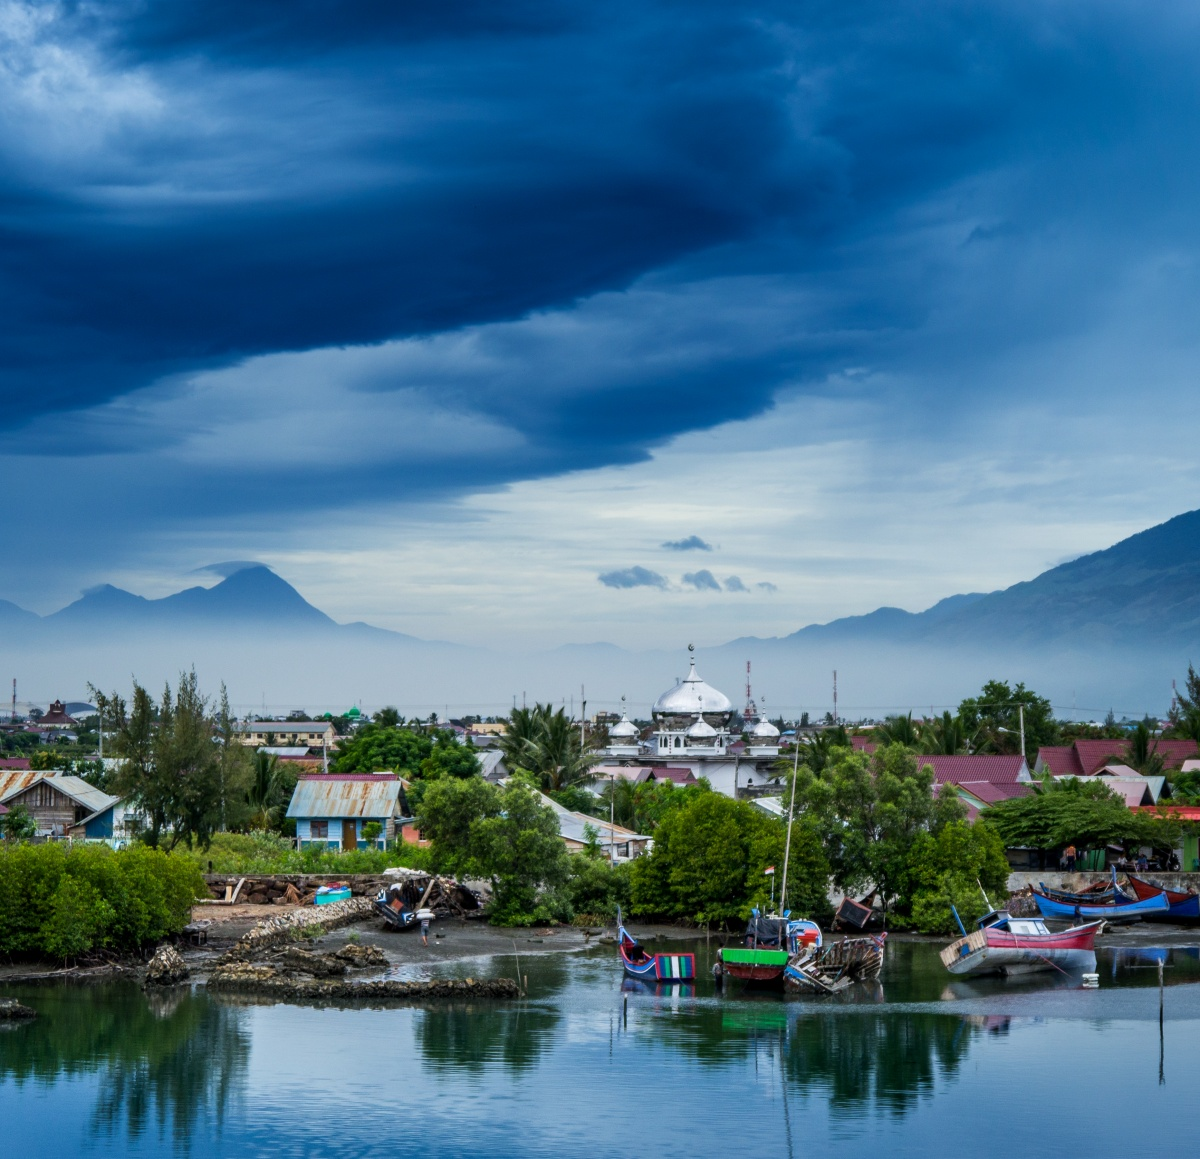 Photo of early morning in Banda Aceh. Big clouds and misty mountains.